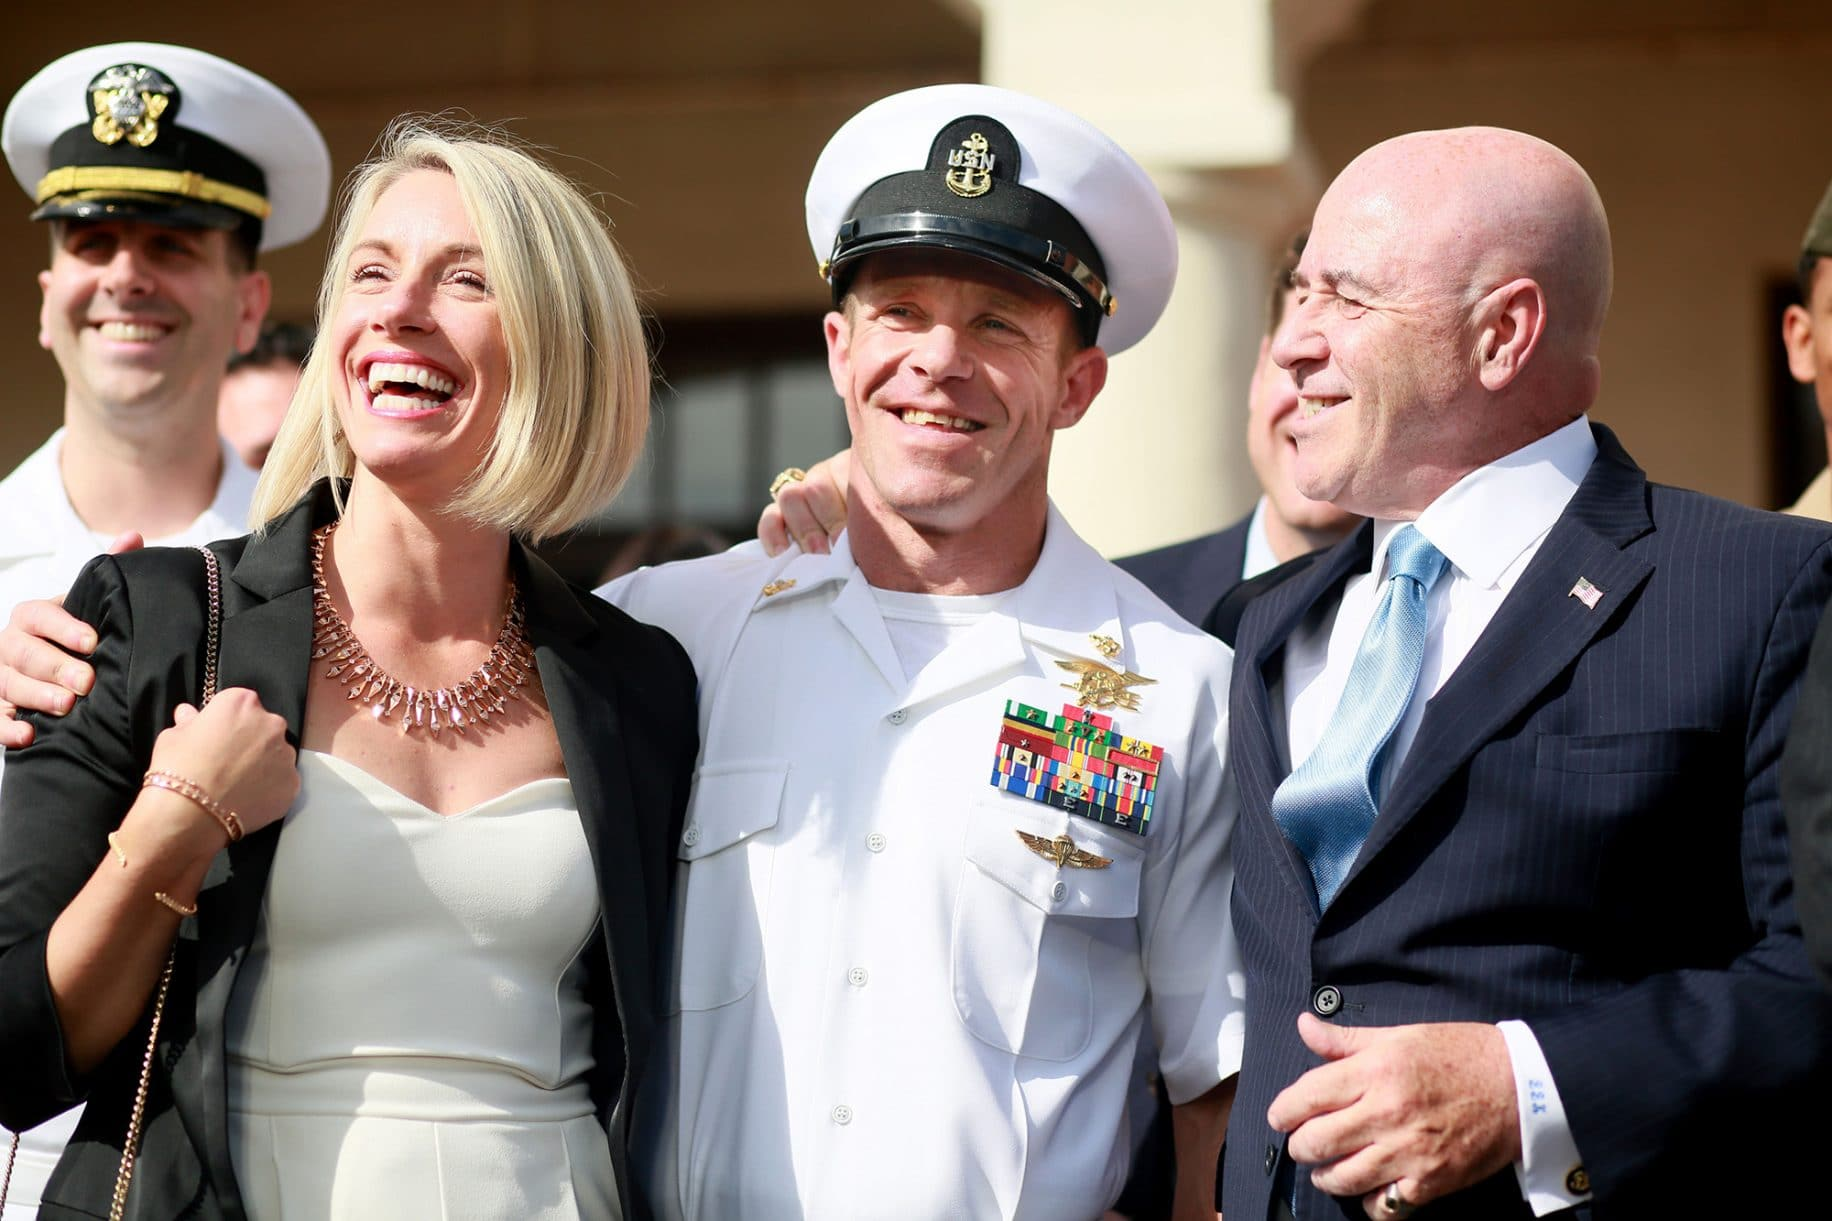 Video: Retired Navy SEAL Eddie Gallagher strikes back at SEALs who testified against him